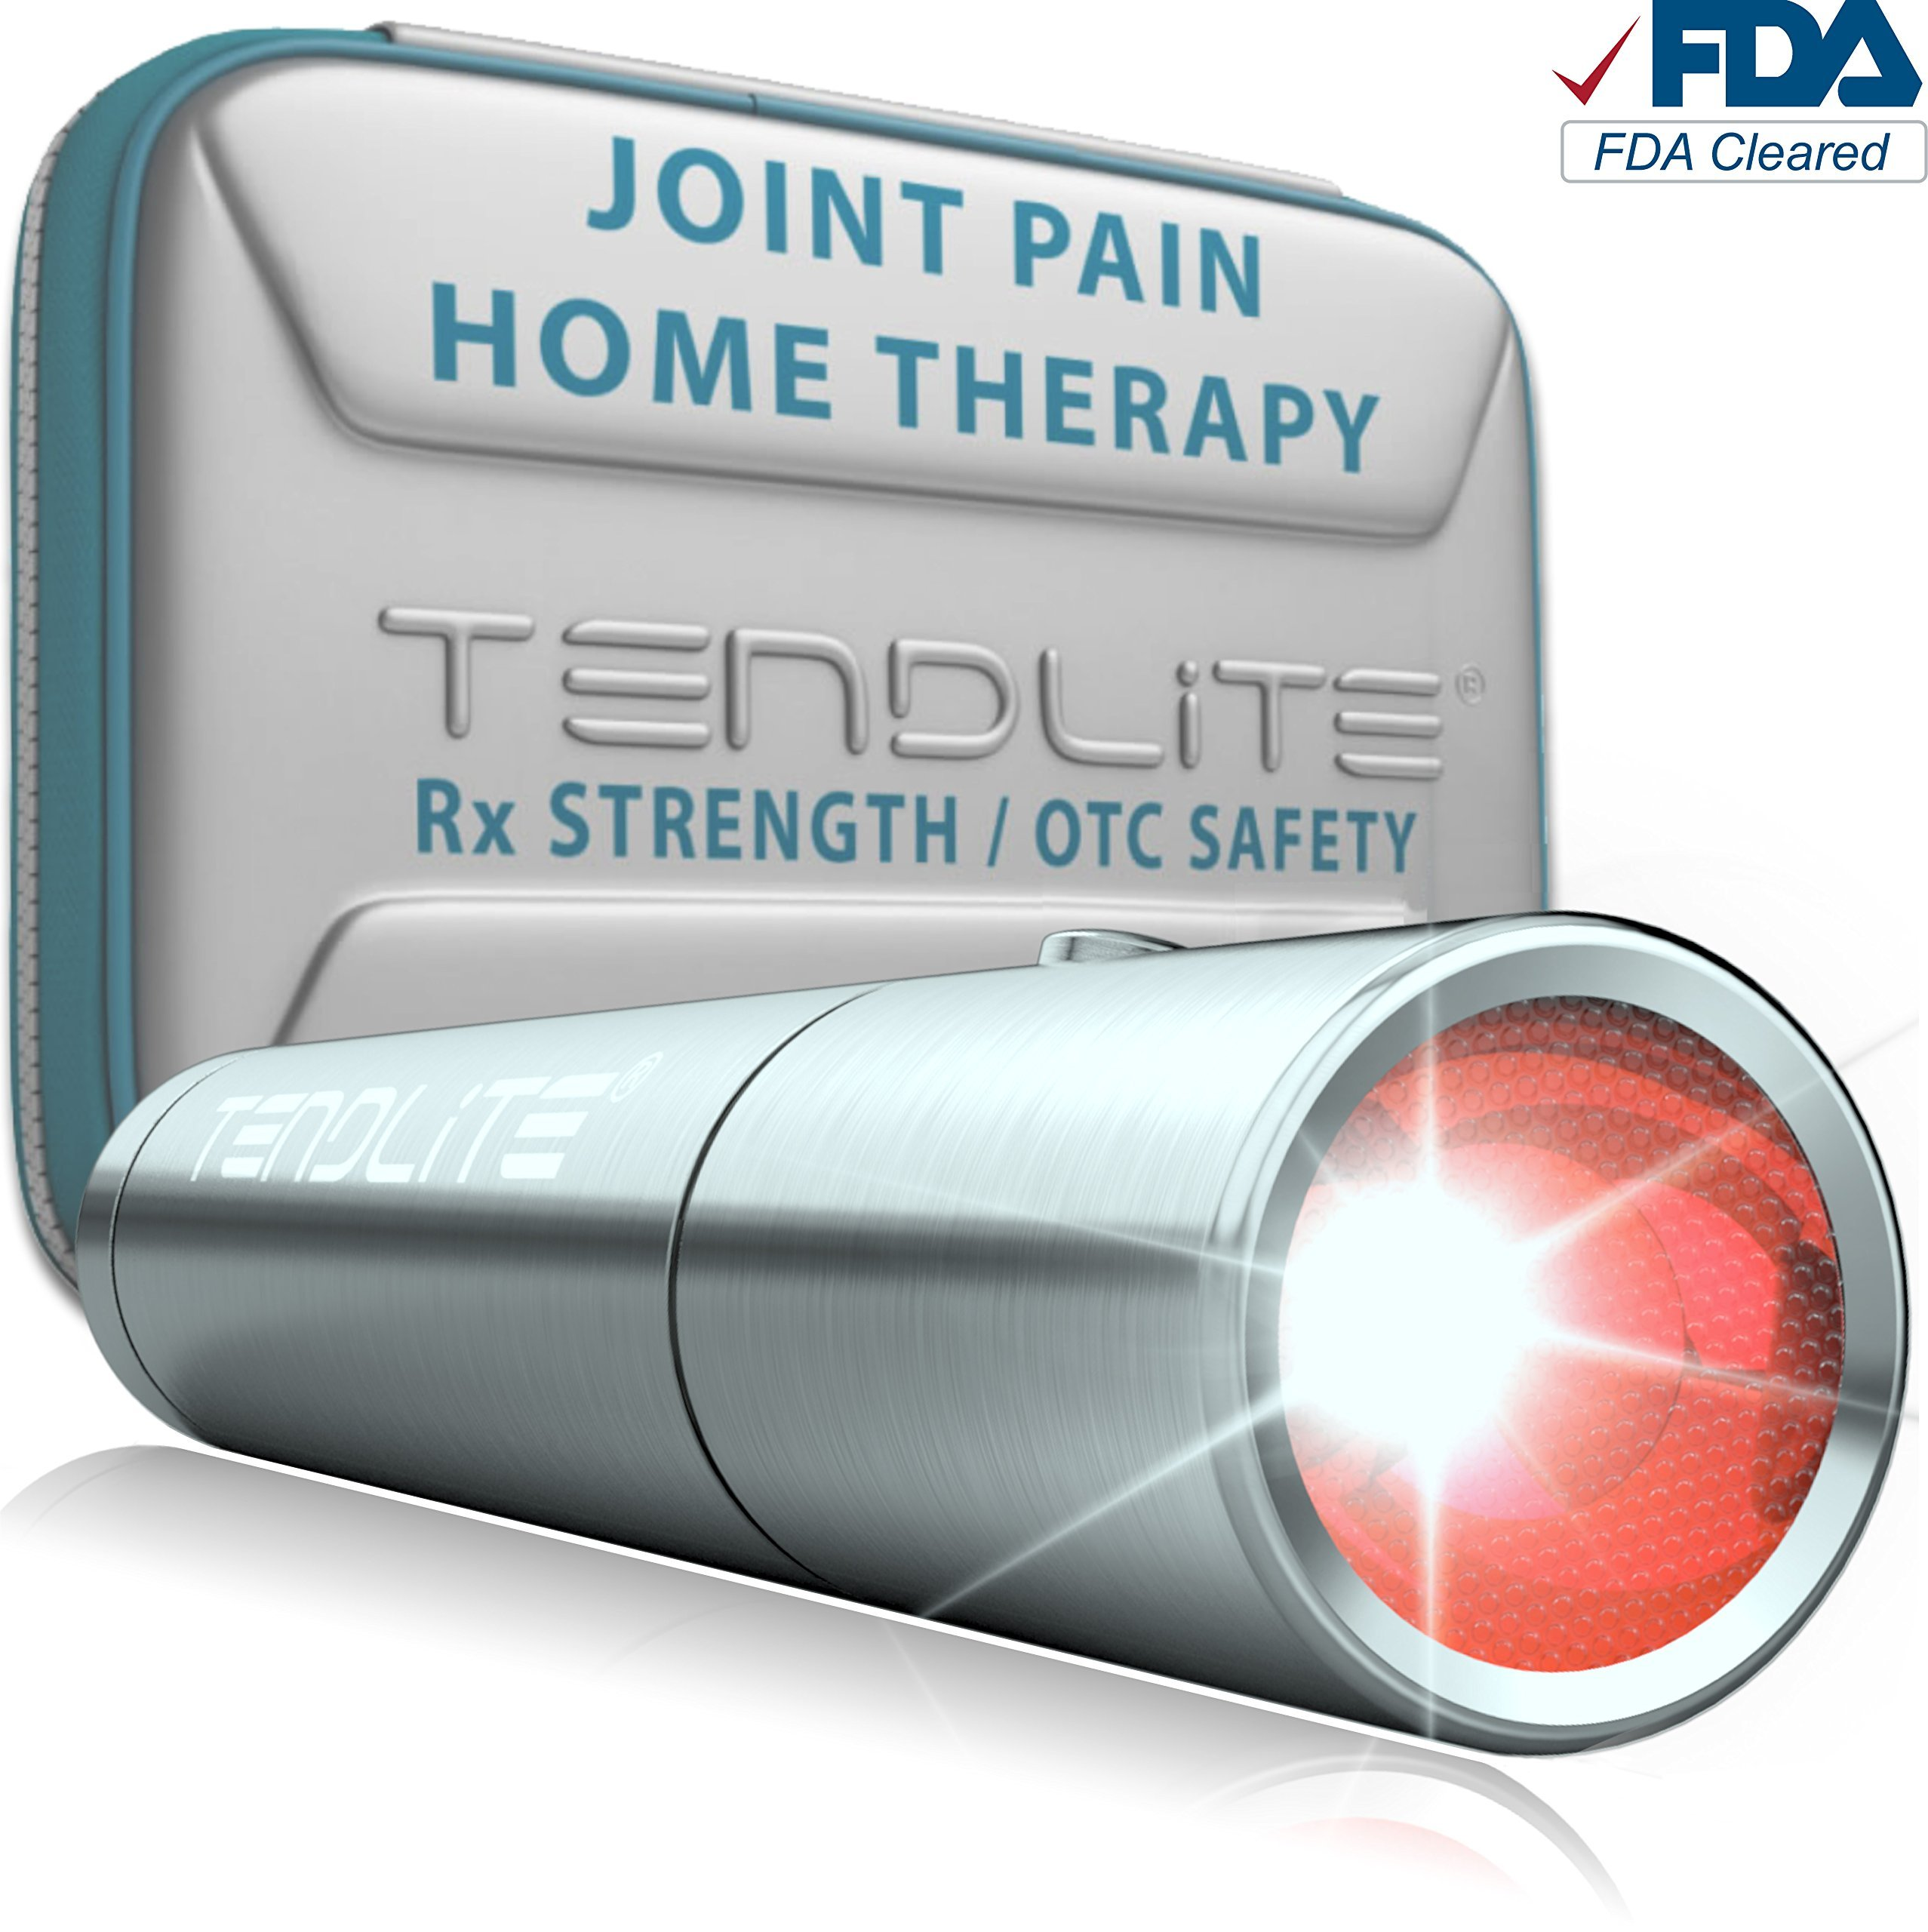 Amazon.com: TENDLITE® Advanced Pain Relief FDA Cleared - Red Led ...